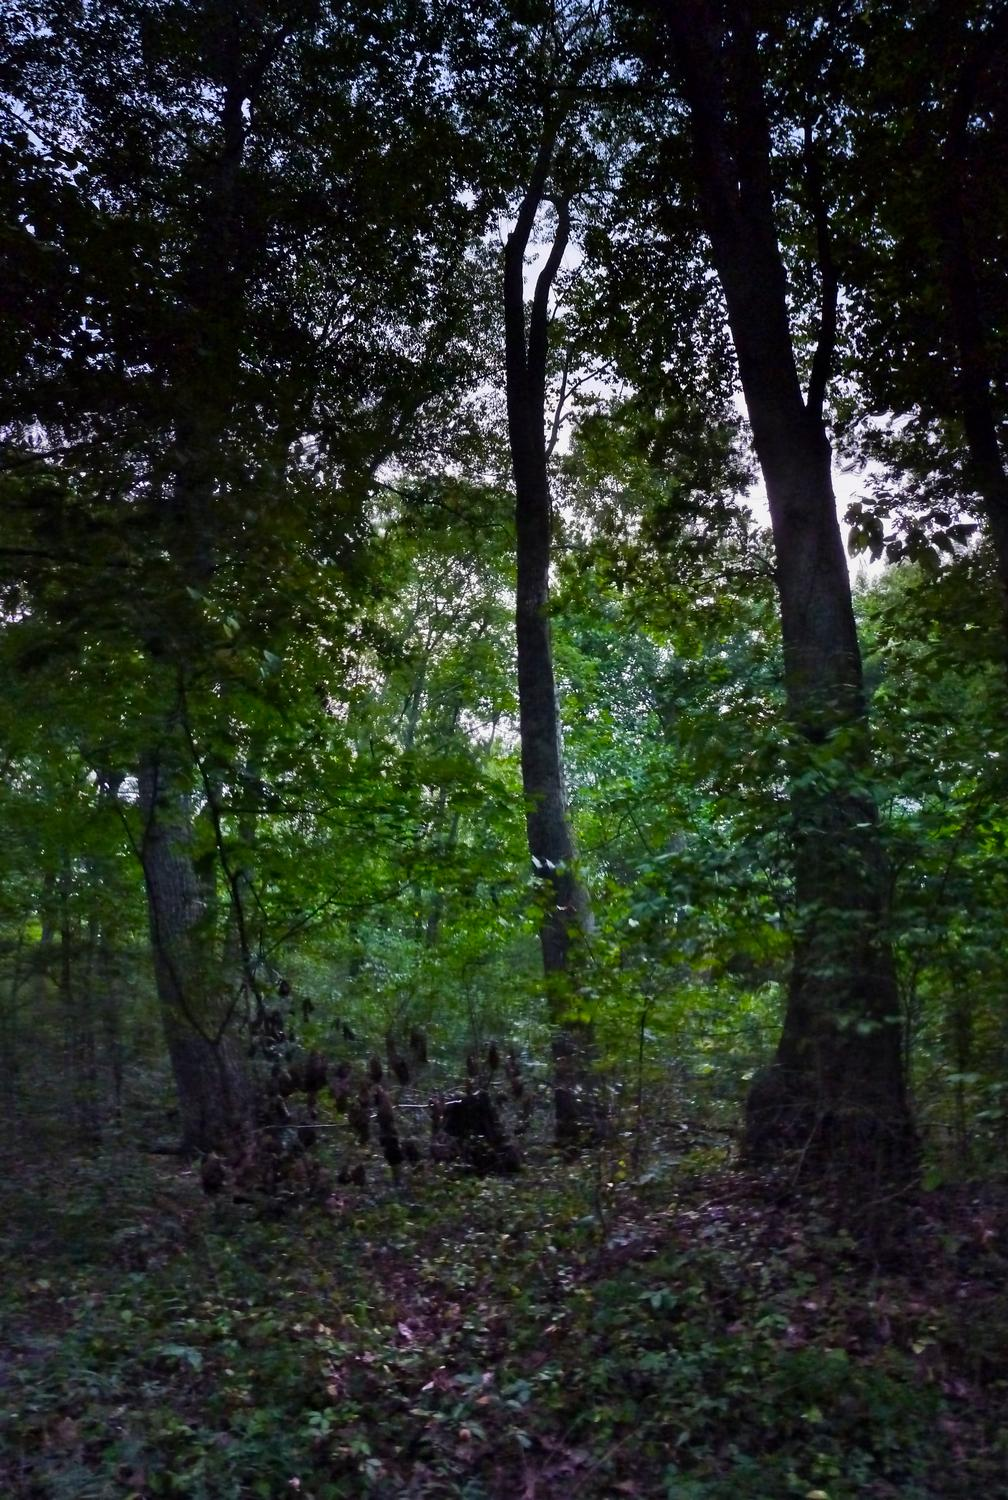 - Vertical panorama of trees at night. - Panasonic DMC-FZ35 - Tony Karp, design, art, photography, techno-impressionist, techno-impressionism, aerial photography , drone , drones , dji , mavic pro , video , 3D printing - Books -